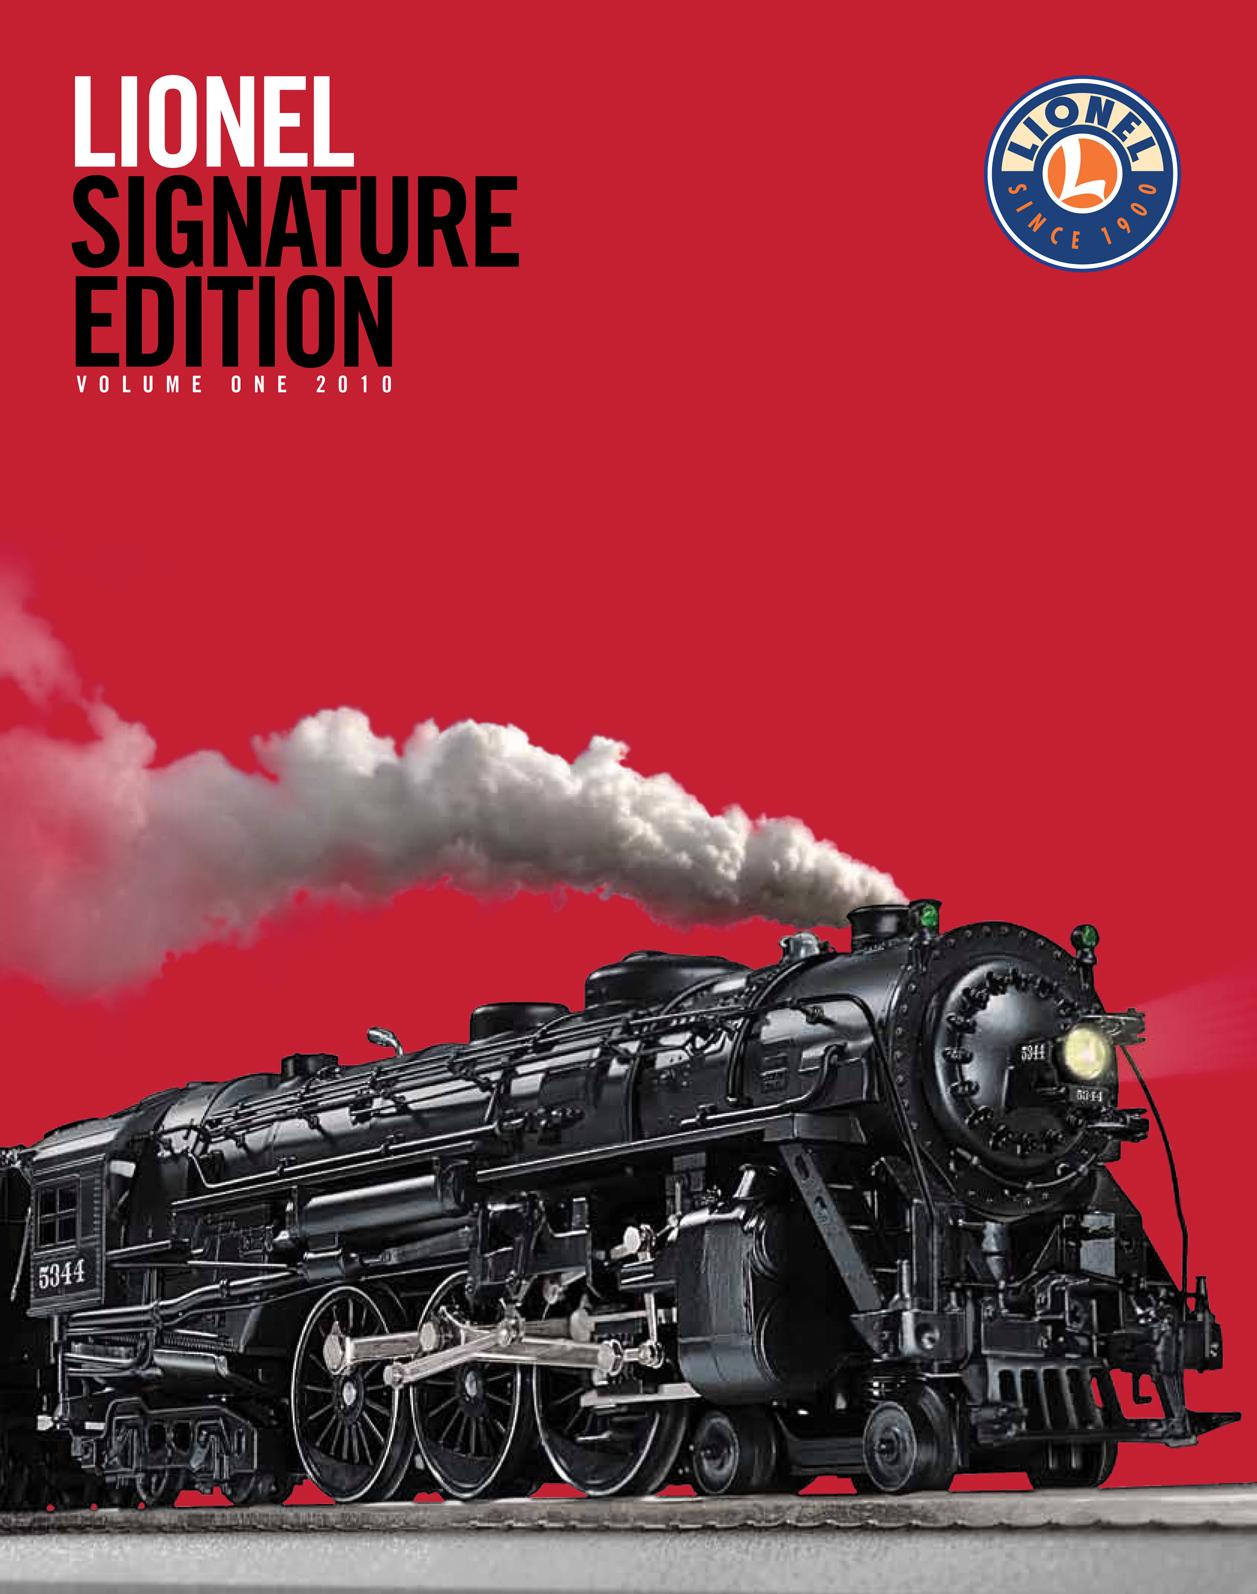 Lionel Catalogs - Signature Edition 2010